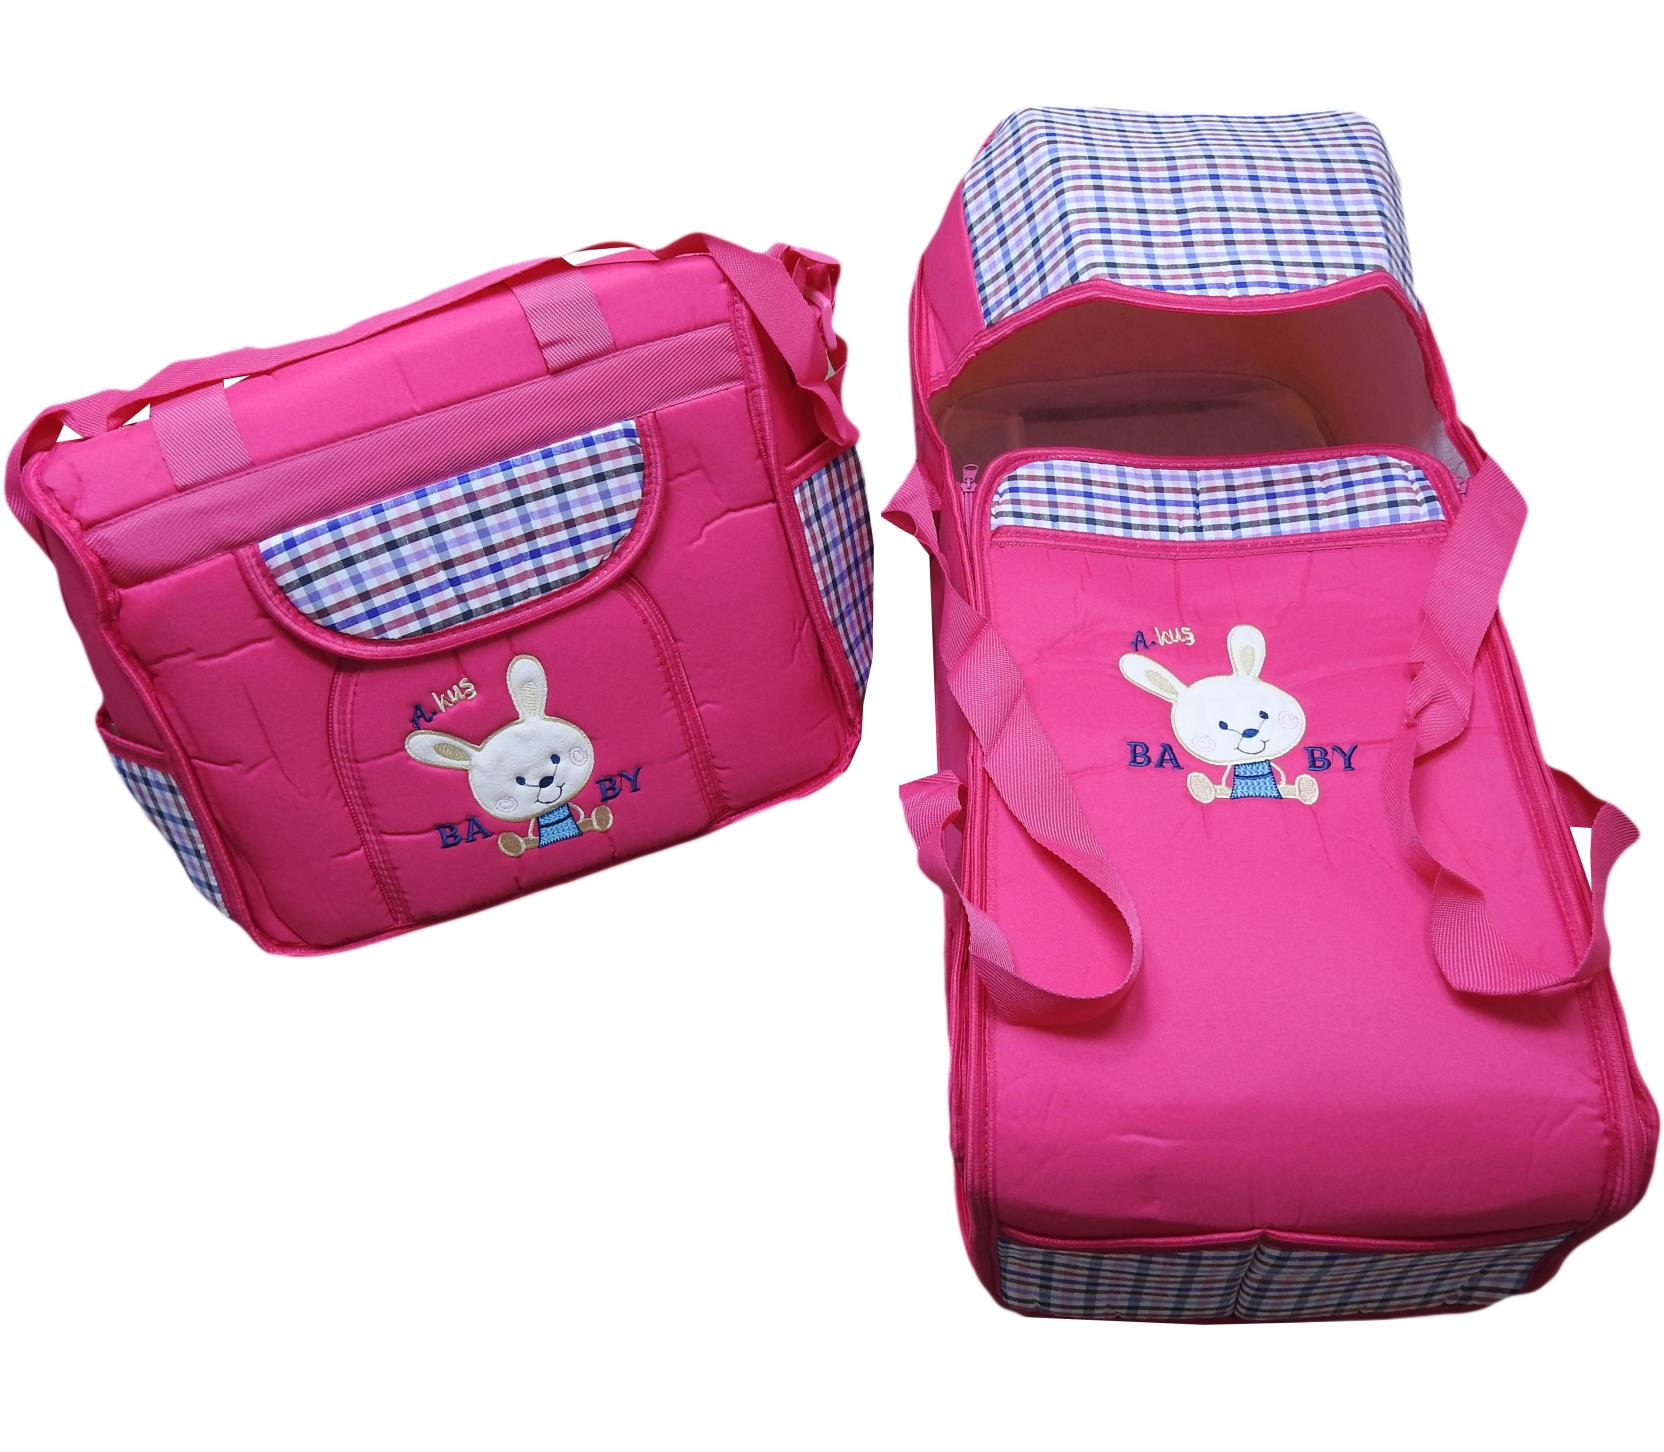 407 baby bag set 2 pcs embroidered